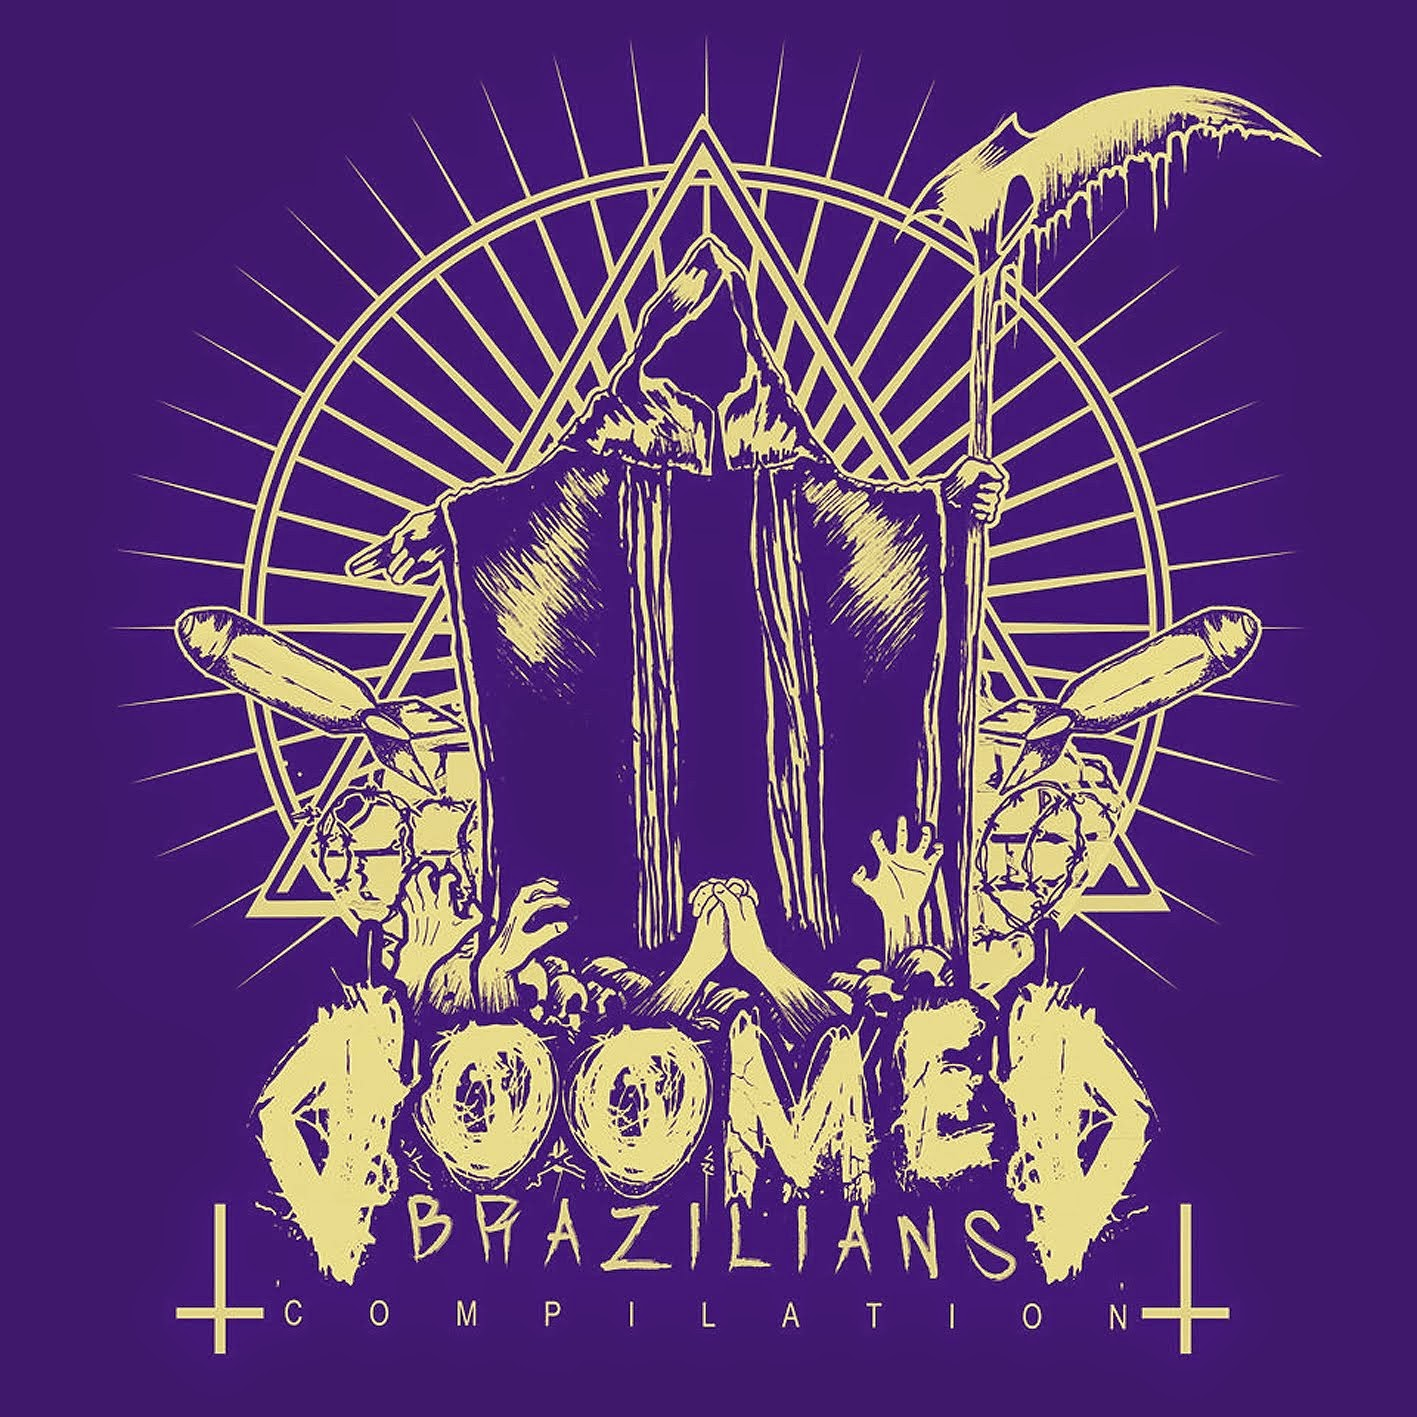 Doomed Brazilians Compilation (cliquem na capa e façam o download)